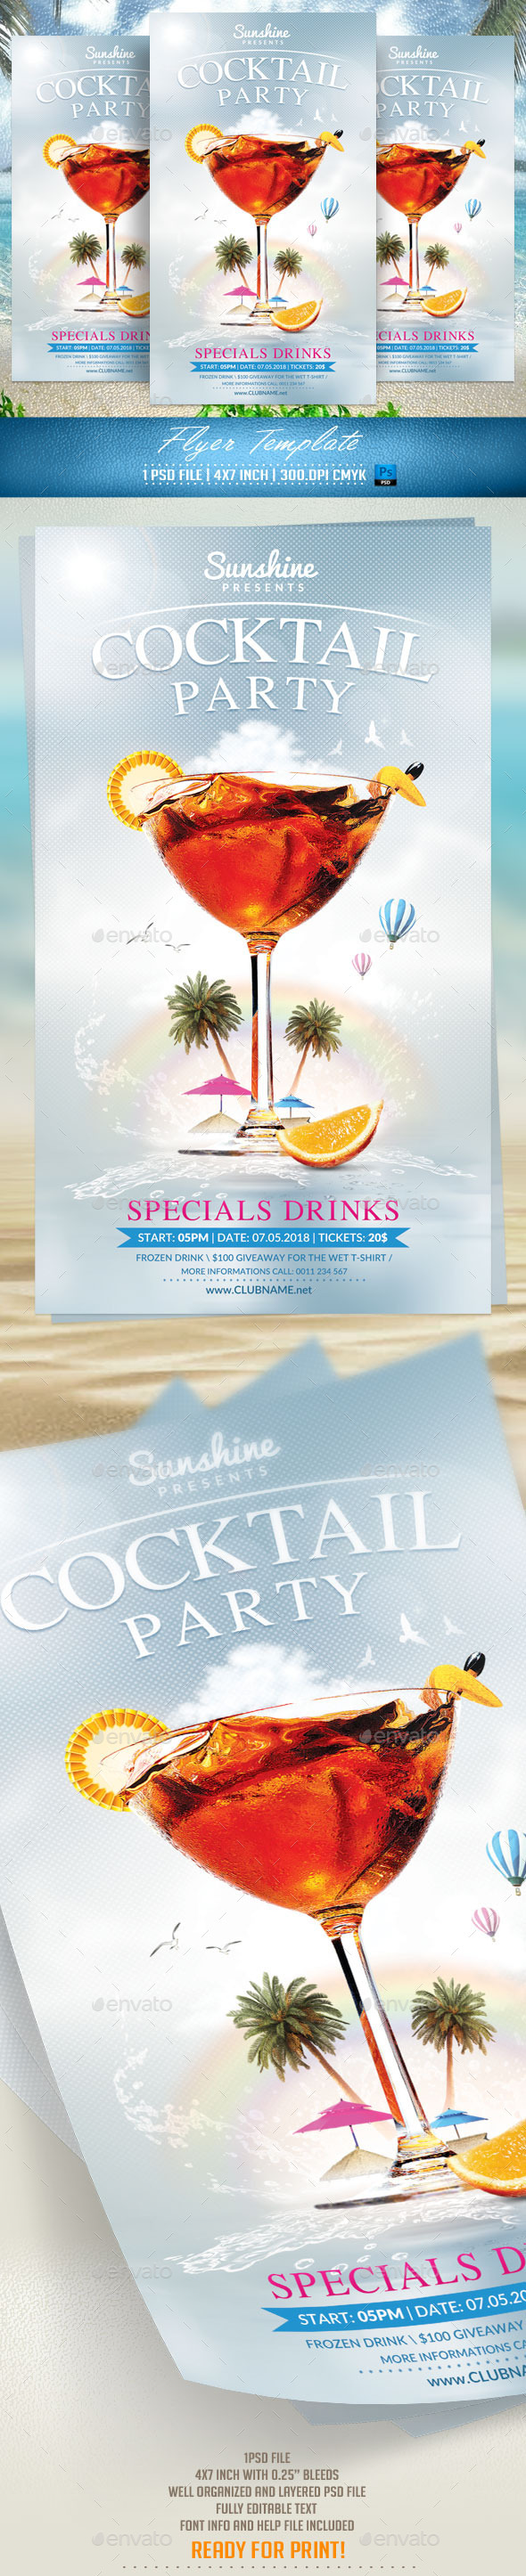 GraphicRiver Cocktail Party Flyer Template v2 11601545